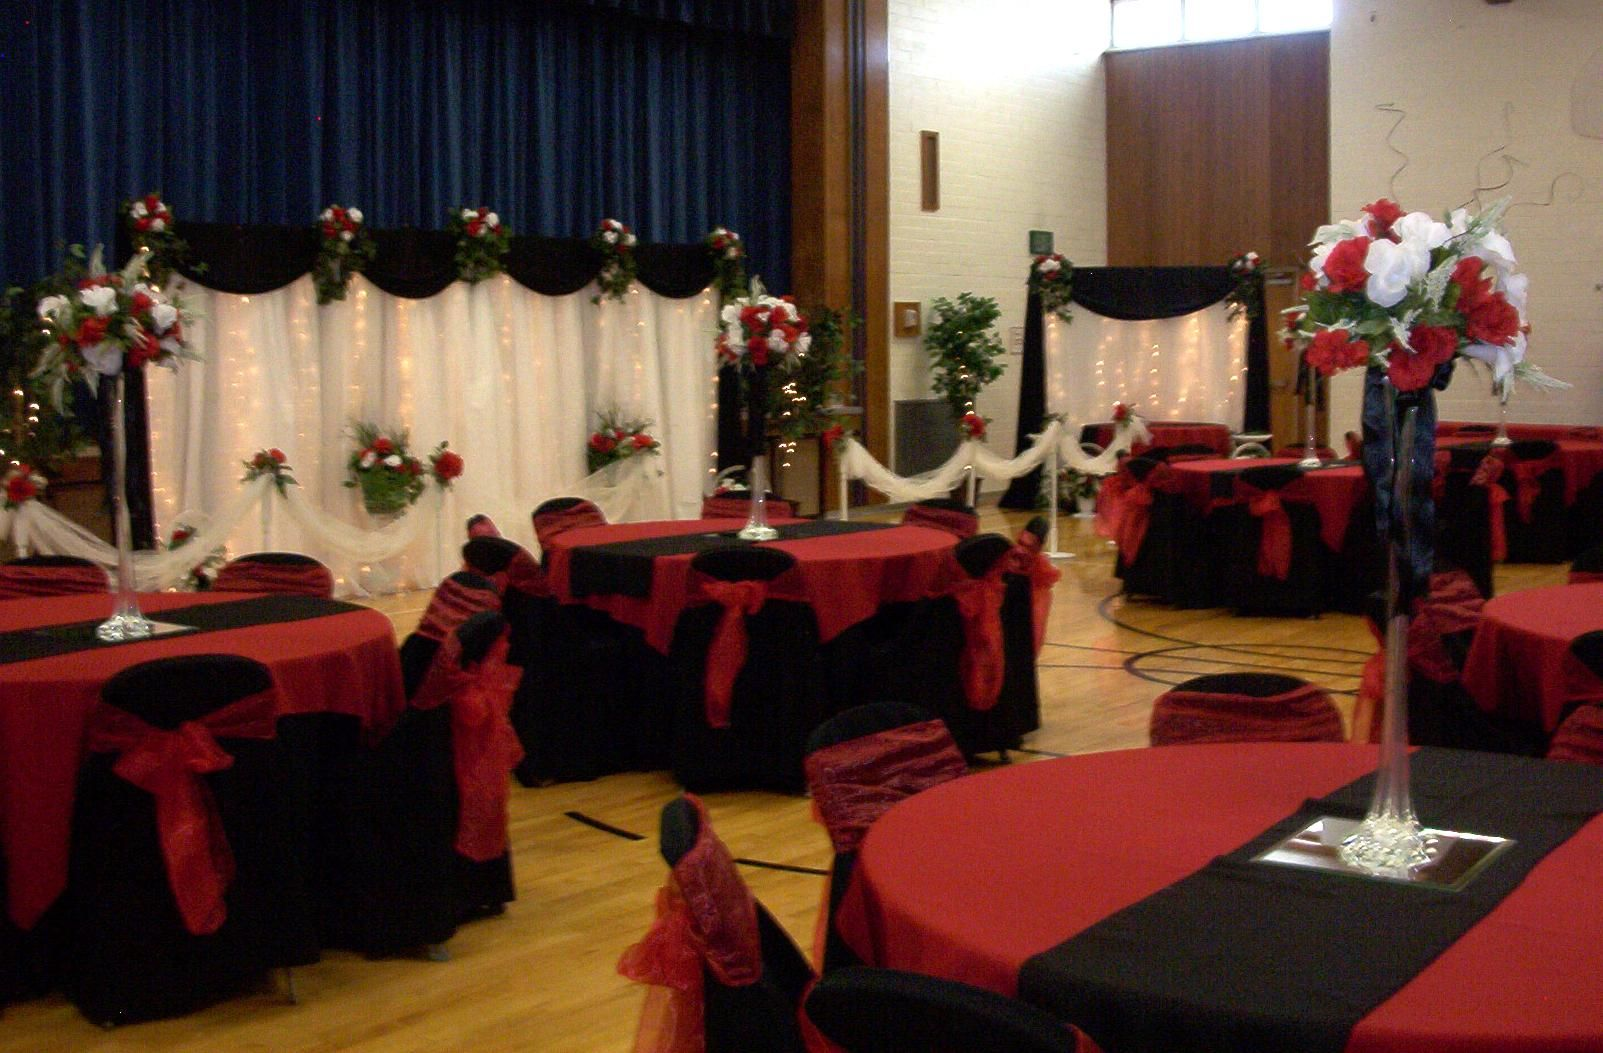 Black White Red Gold Reception Decorations October 9th 2009